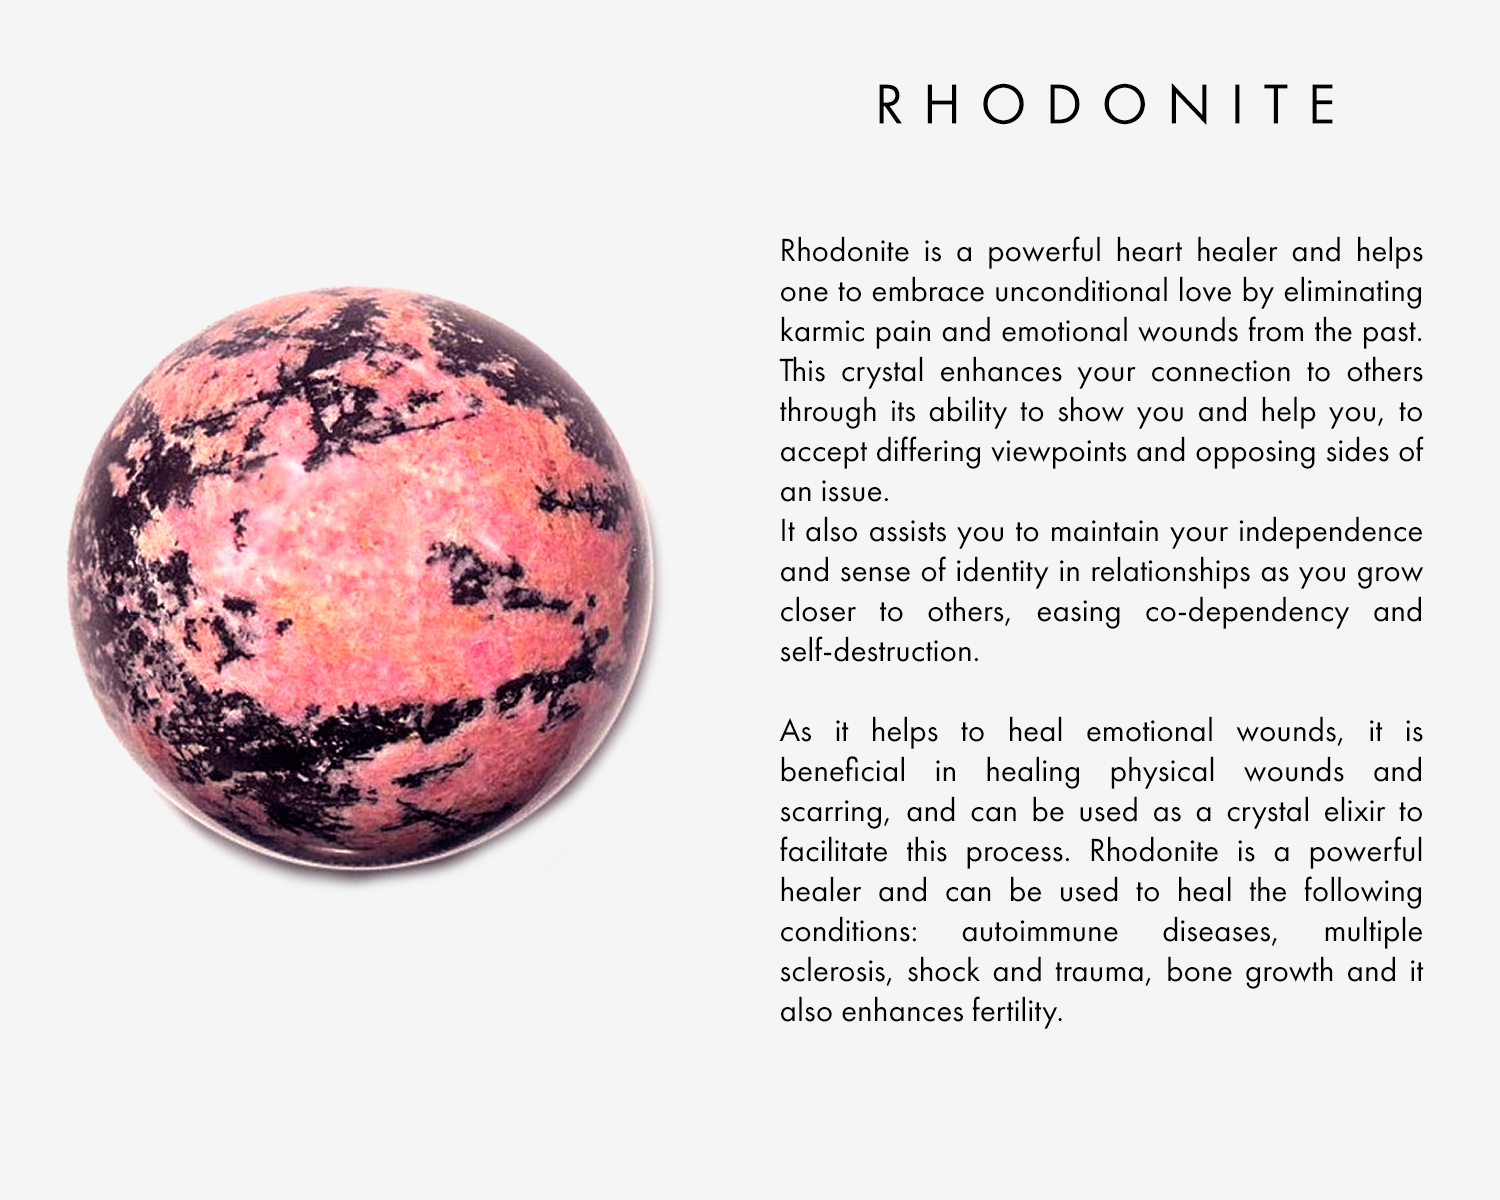 Rhodonite is a powerful heart healer and helps one to embrace unconditional love by eliminating karmic pain and emotional wounds from the past. This crystal enhances your connection to others through its ability to show you and help you, to accept differing viewpoints and opposing sides of an issue. It also assists you to maintain your independence and sense of identity in relationships as you grow closer to others, easing co-dependency and self-destruction.   As it helps to heal emotional wounds, it is beneficial in healing physical wounds and scarring, and can be used as a crystal elixir to facilitate this process. Rhodonite is a powerful healer and can be used to heal the following conditions: autoimmune diseases, multiple sclerosis, shock and trauma, bone growth and it also enhances fertility.